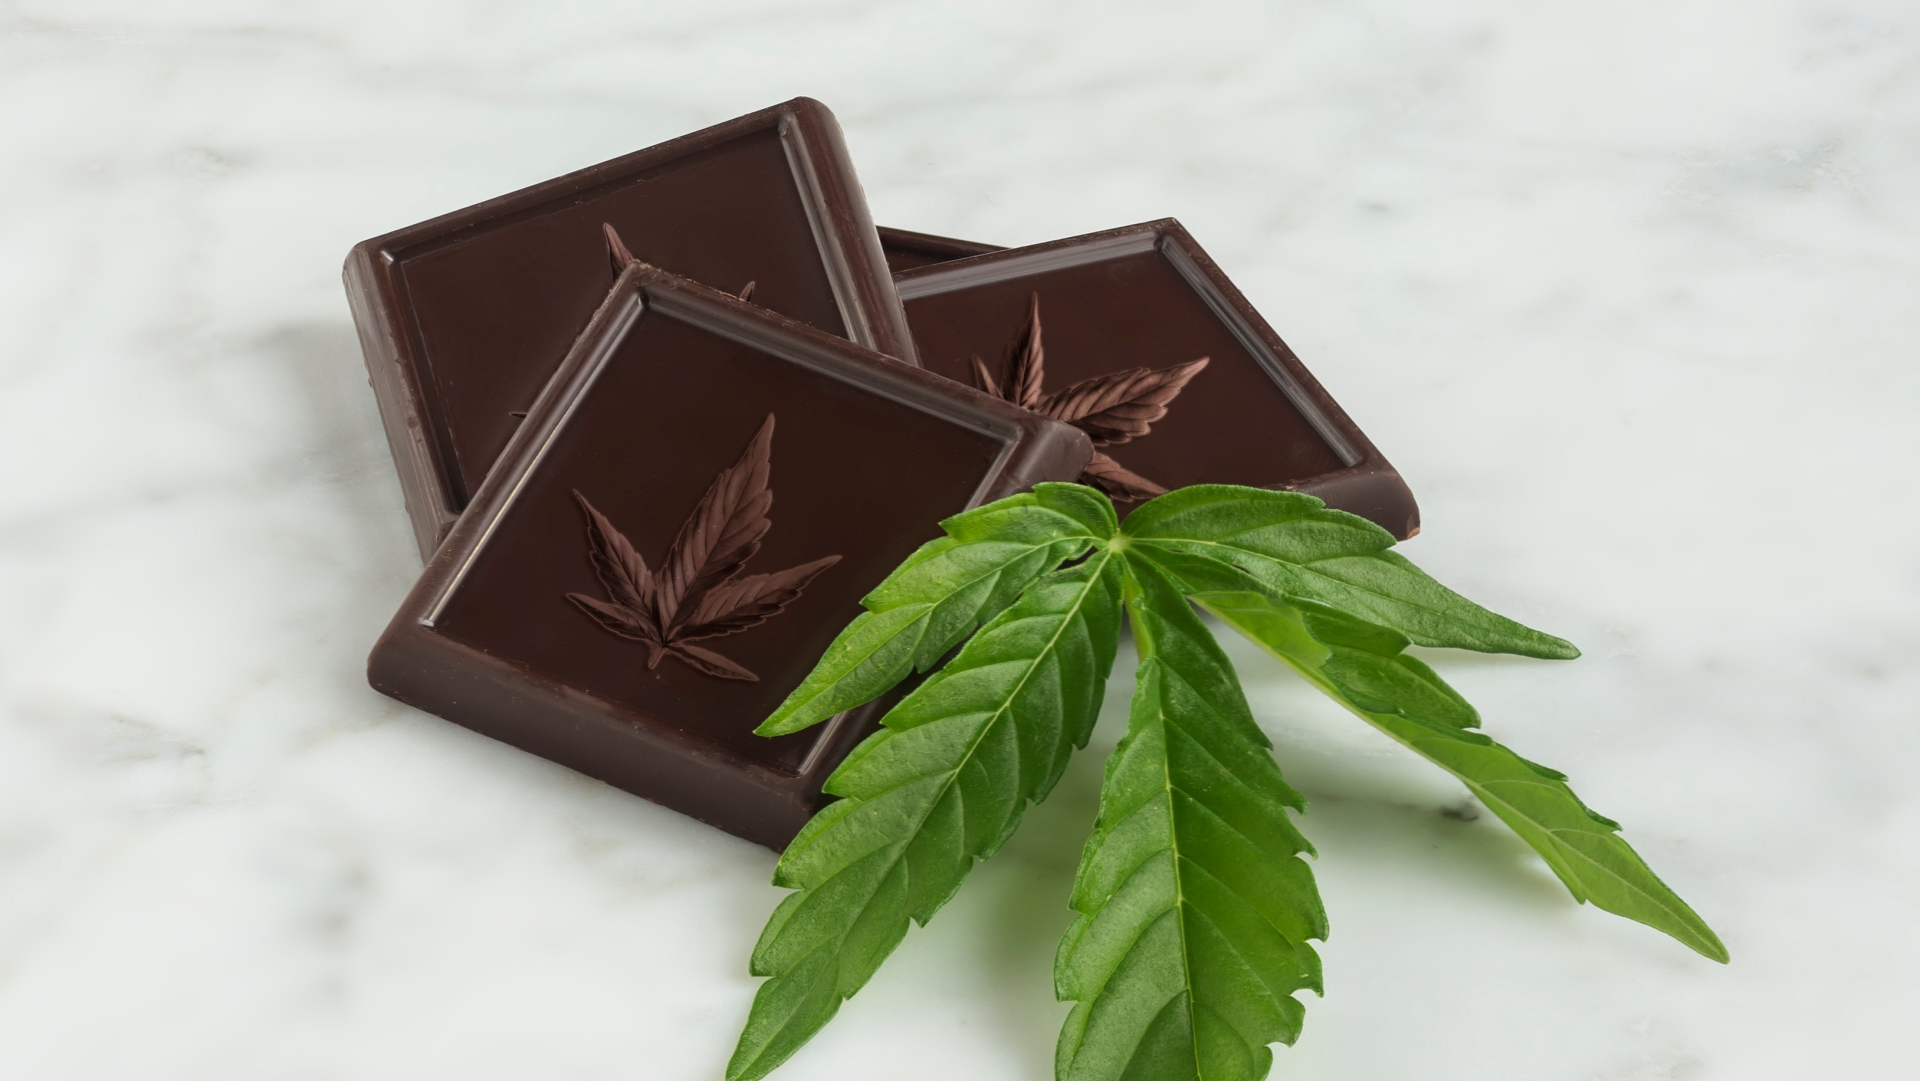 iStock photo of edible cannabis chocolate bar with cannabis leaf